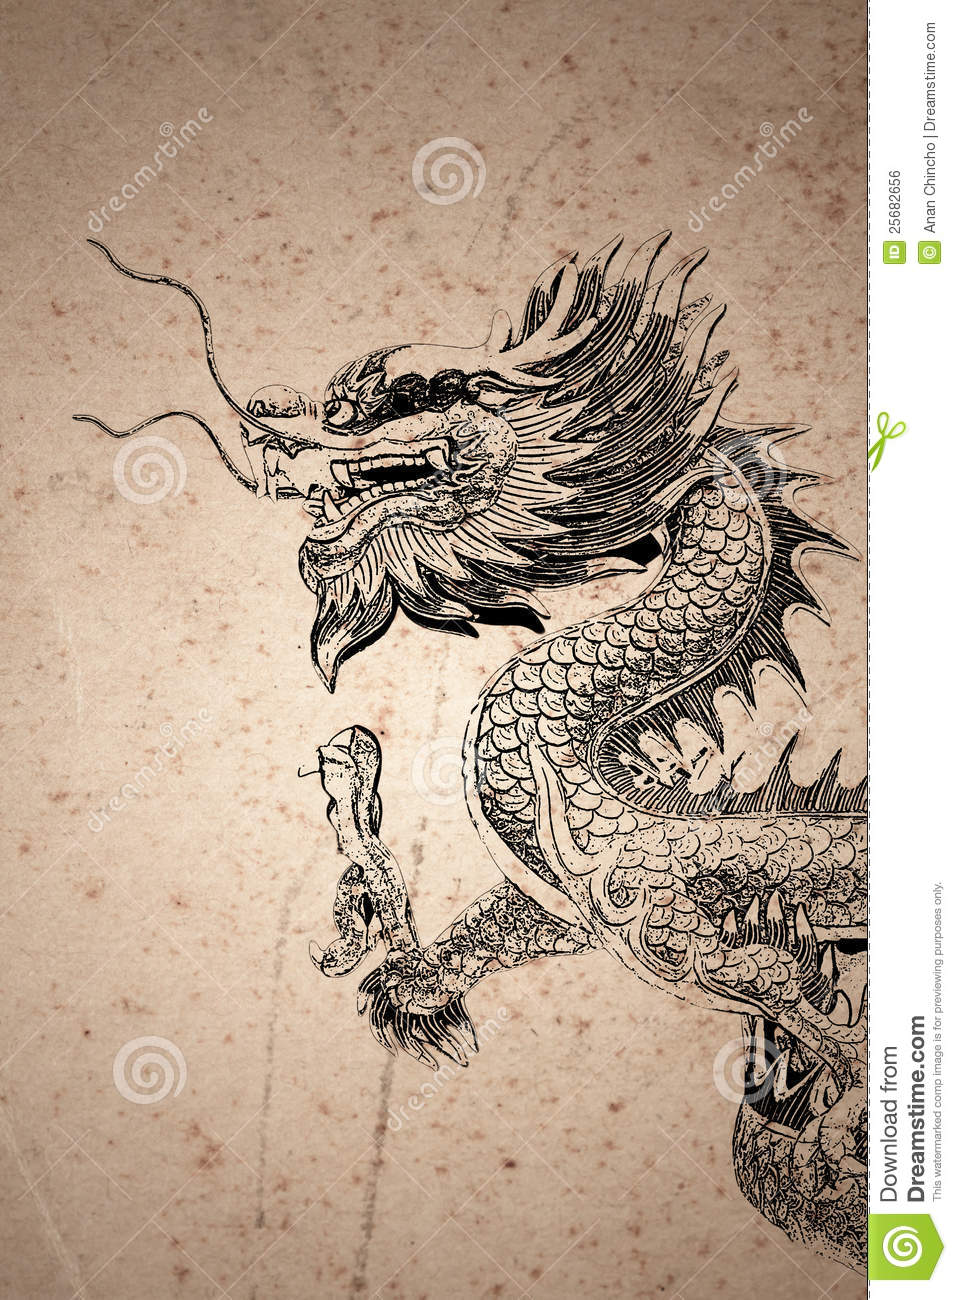 Dragon vector sign stock vector 313643336 shutterstock - Chinese Style Dragon Drawing Royalty Free Stock Image